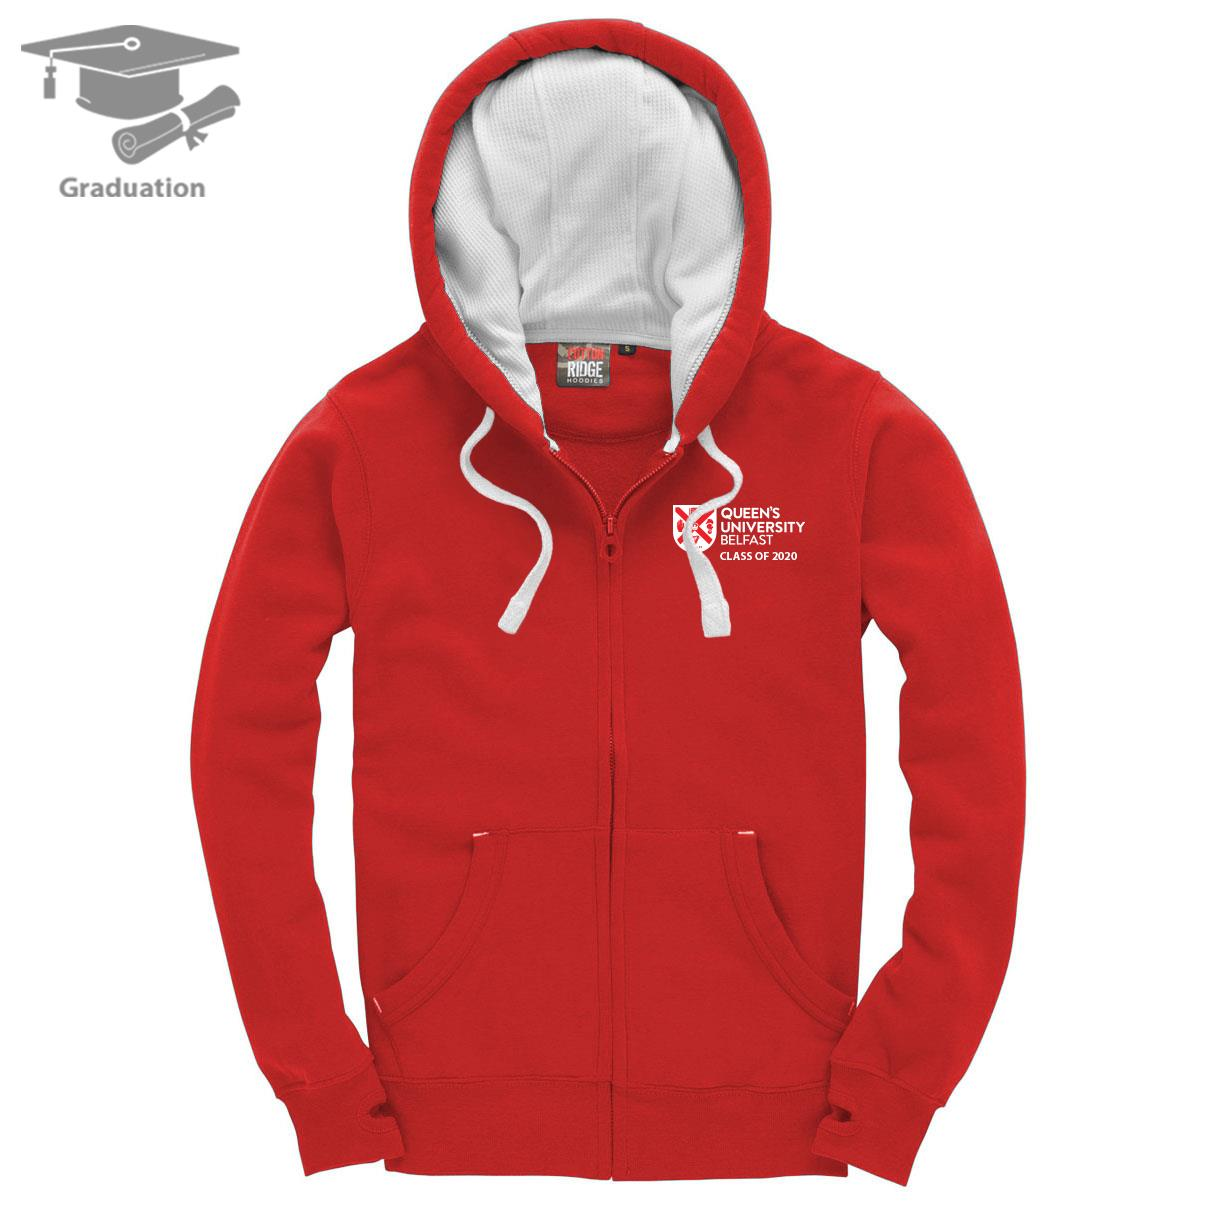 Ultra Soft Feel Hooded Top - Class of 2020 Only